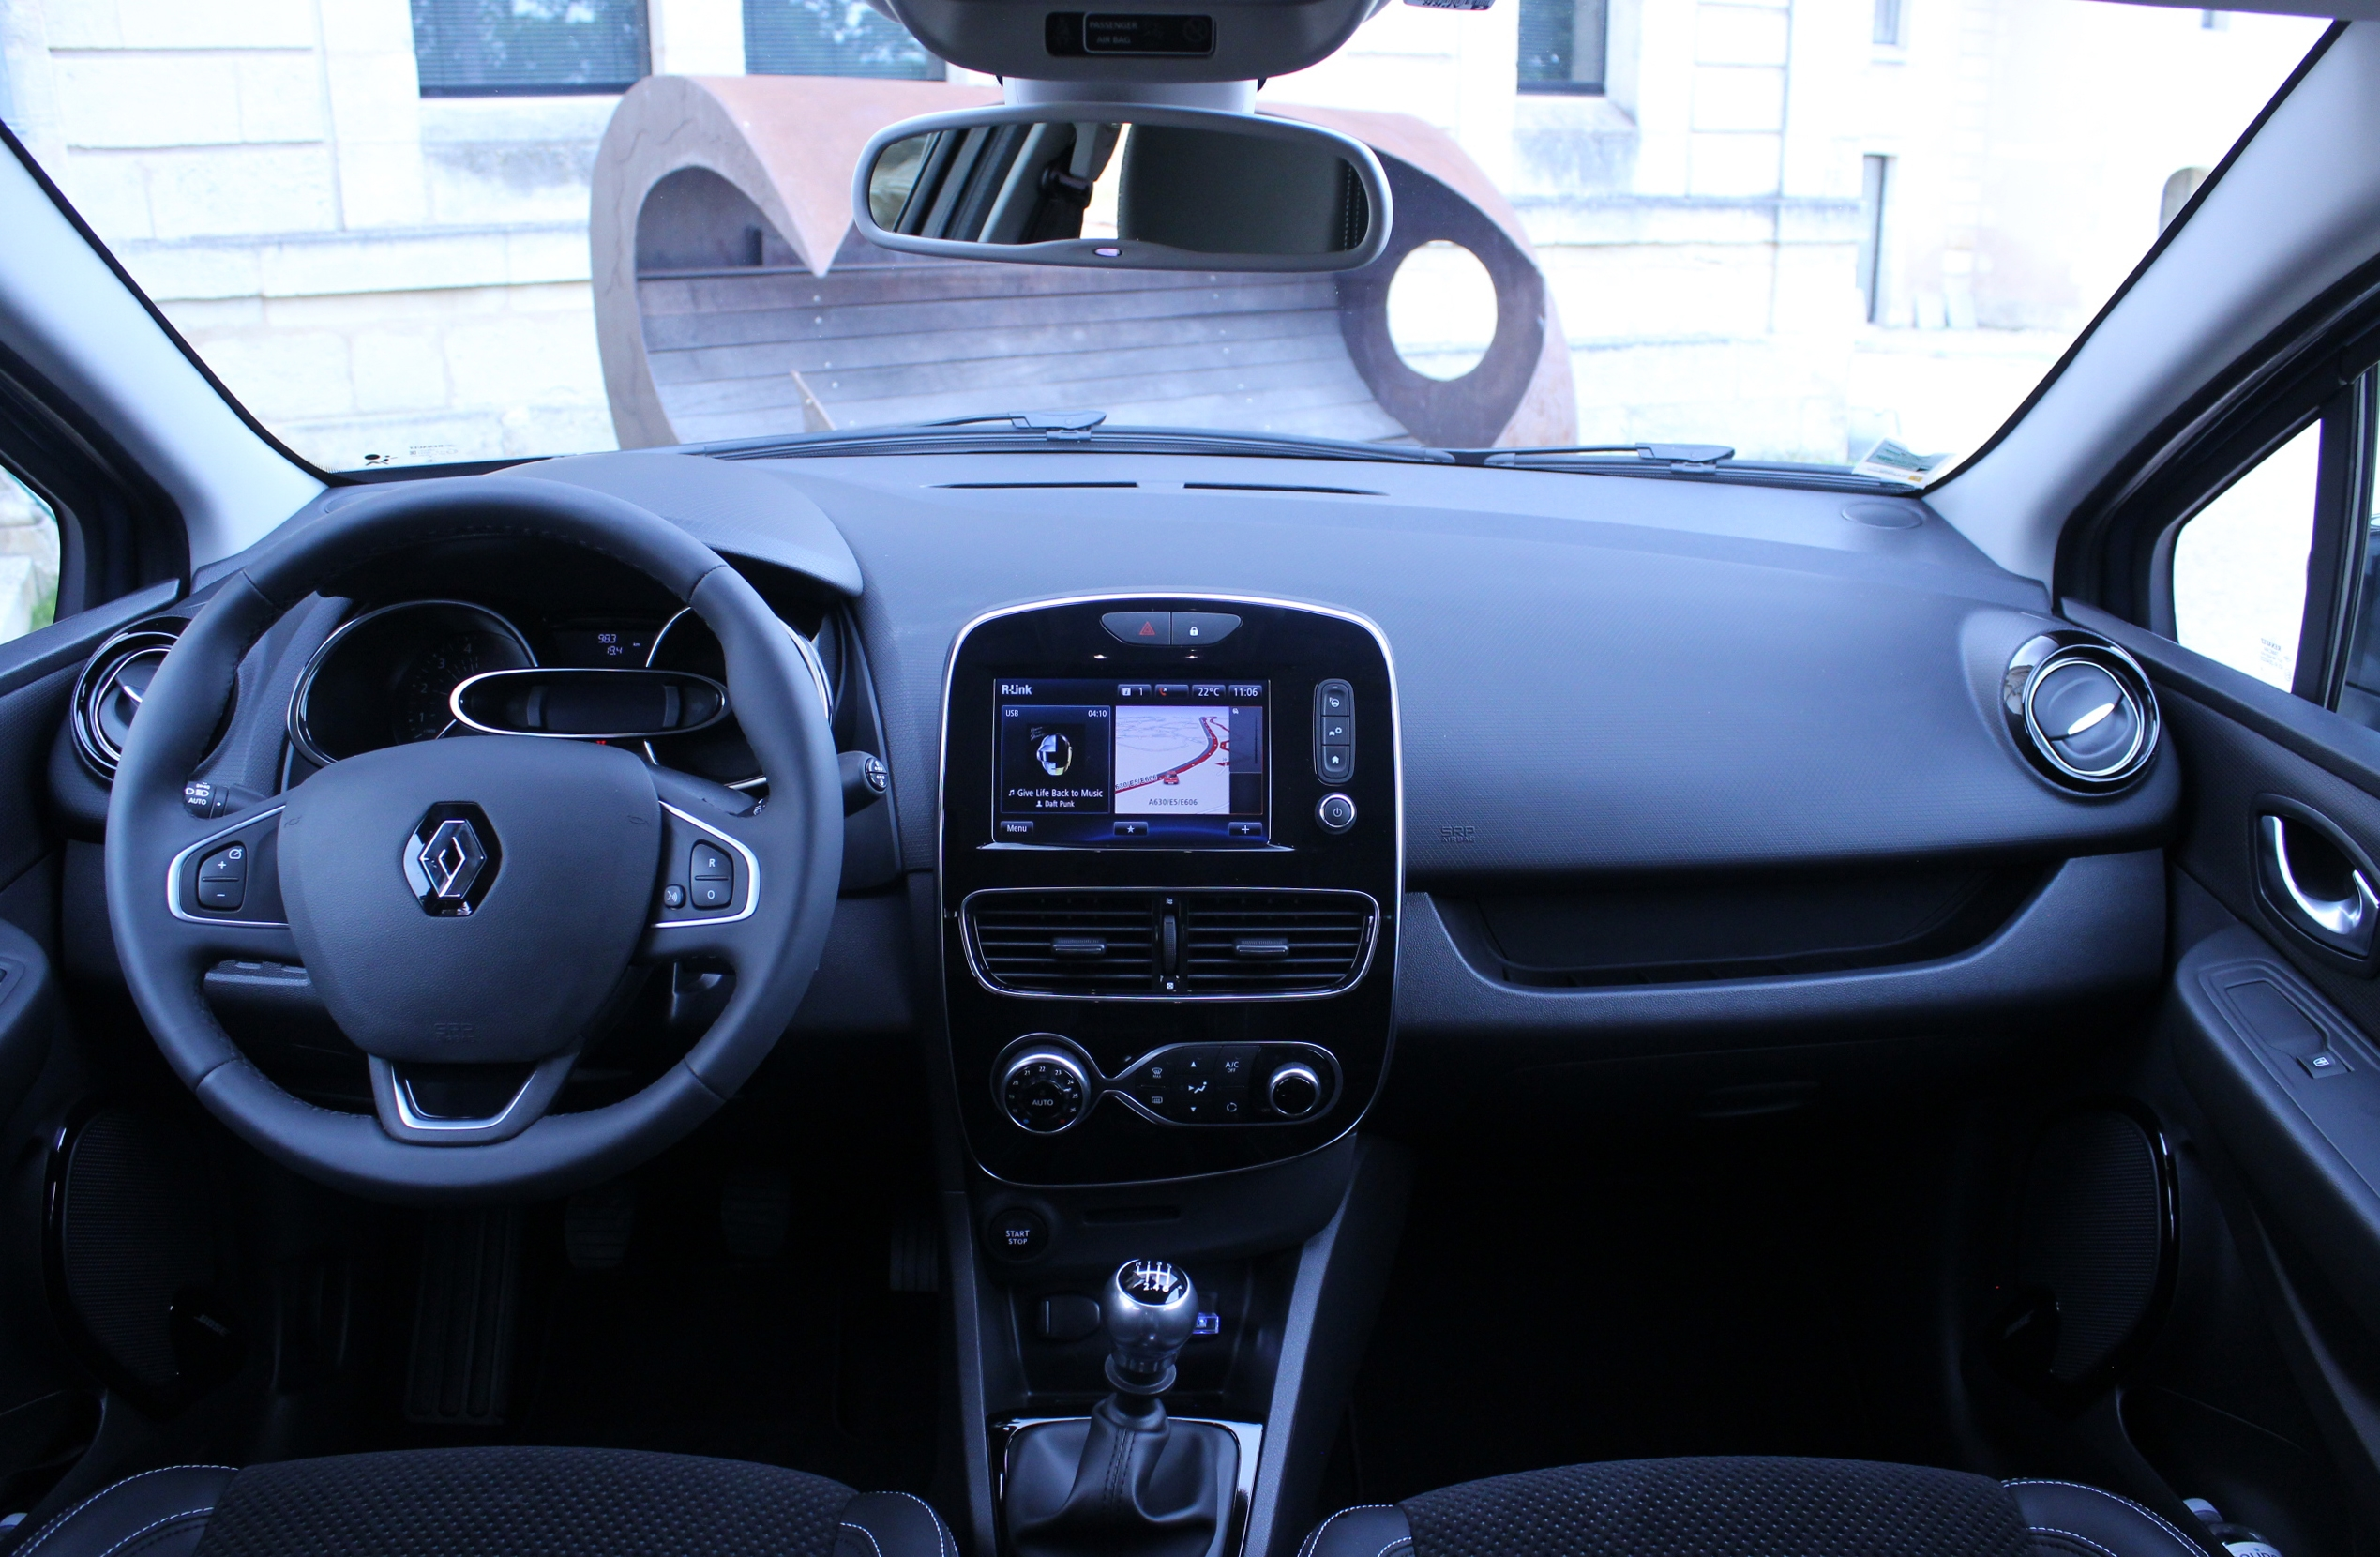 Essai vid o renault clio 4 restyl e confirmation de for Verification interieur exterieur clio 4